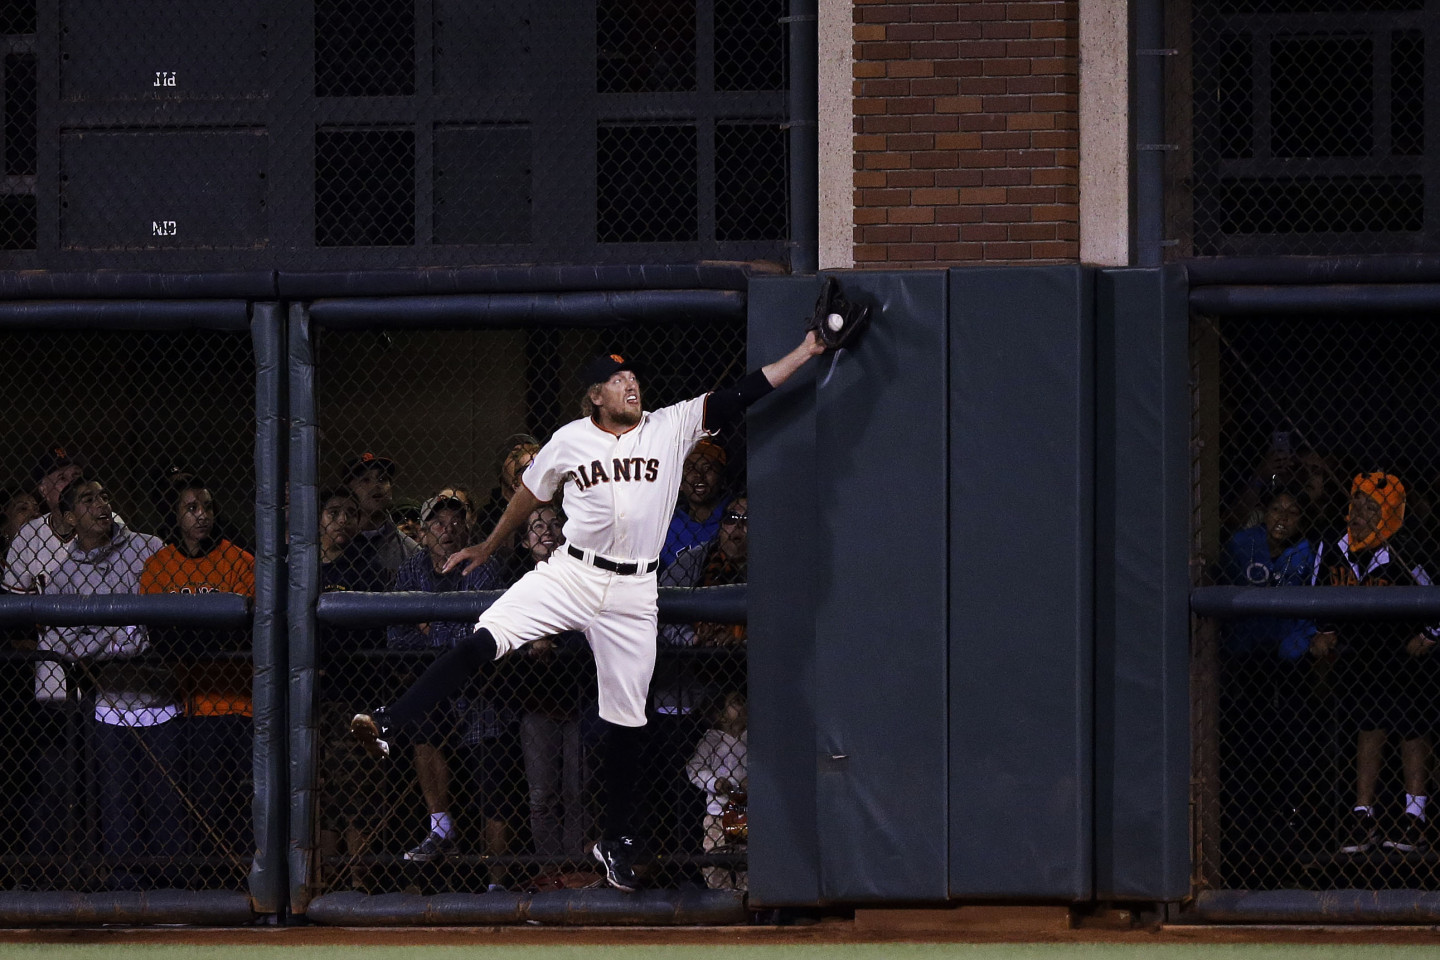 Giants Advance to the NL Championship Series